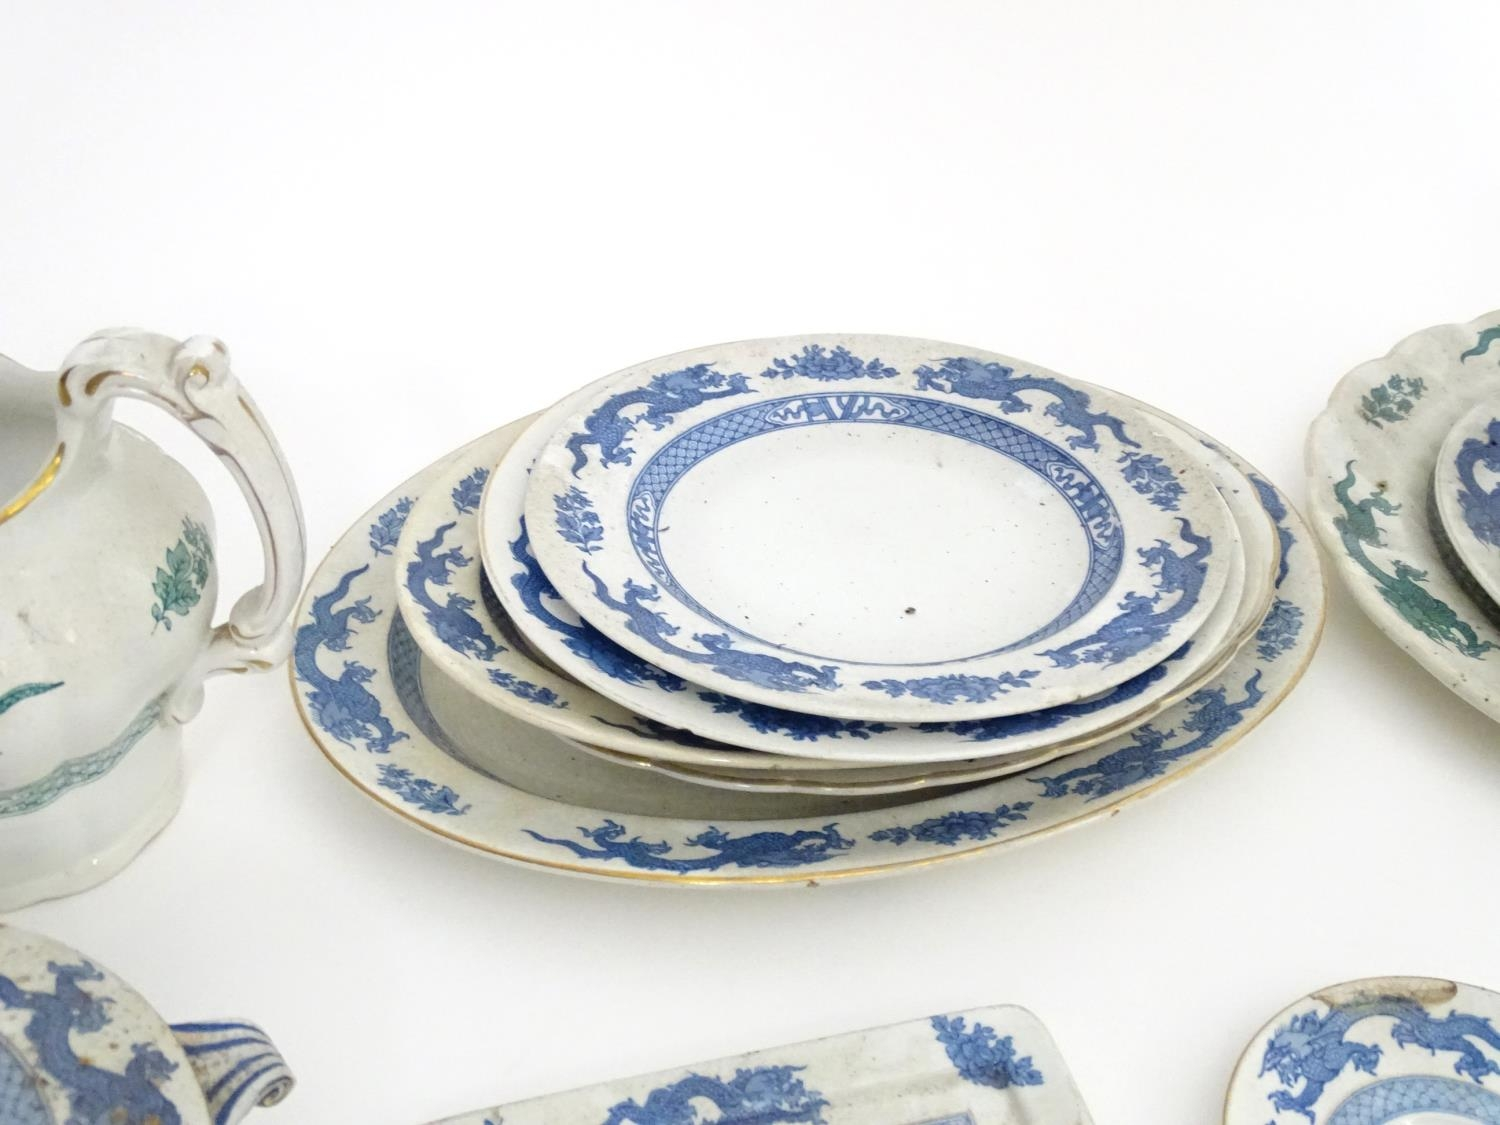 A large quantity of assorted Booths china to include teapots, plates, tureens, jugs, serving dishes, - Image 8 of 17